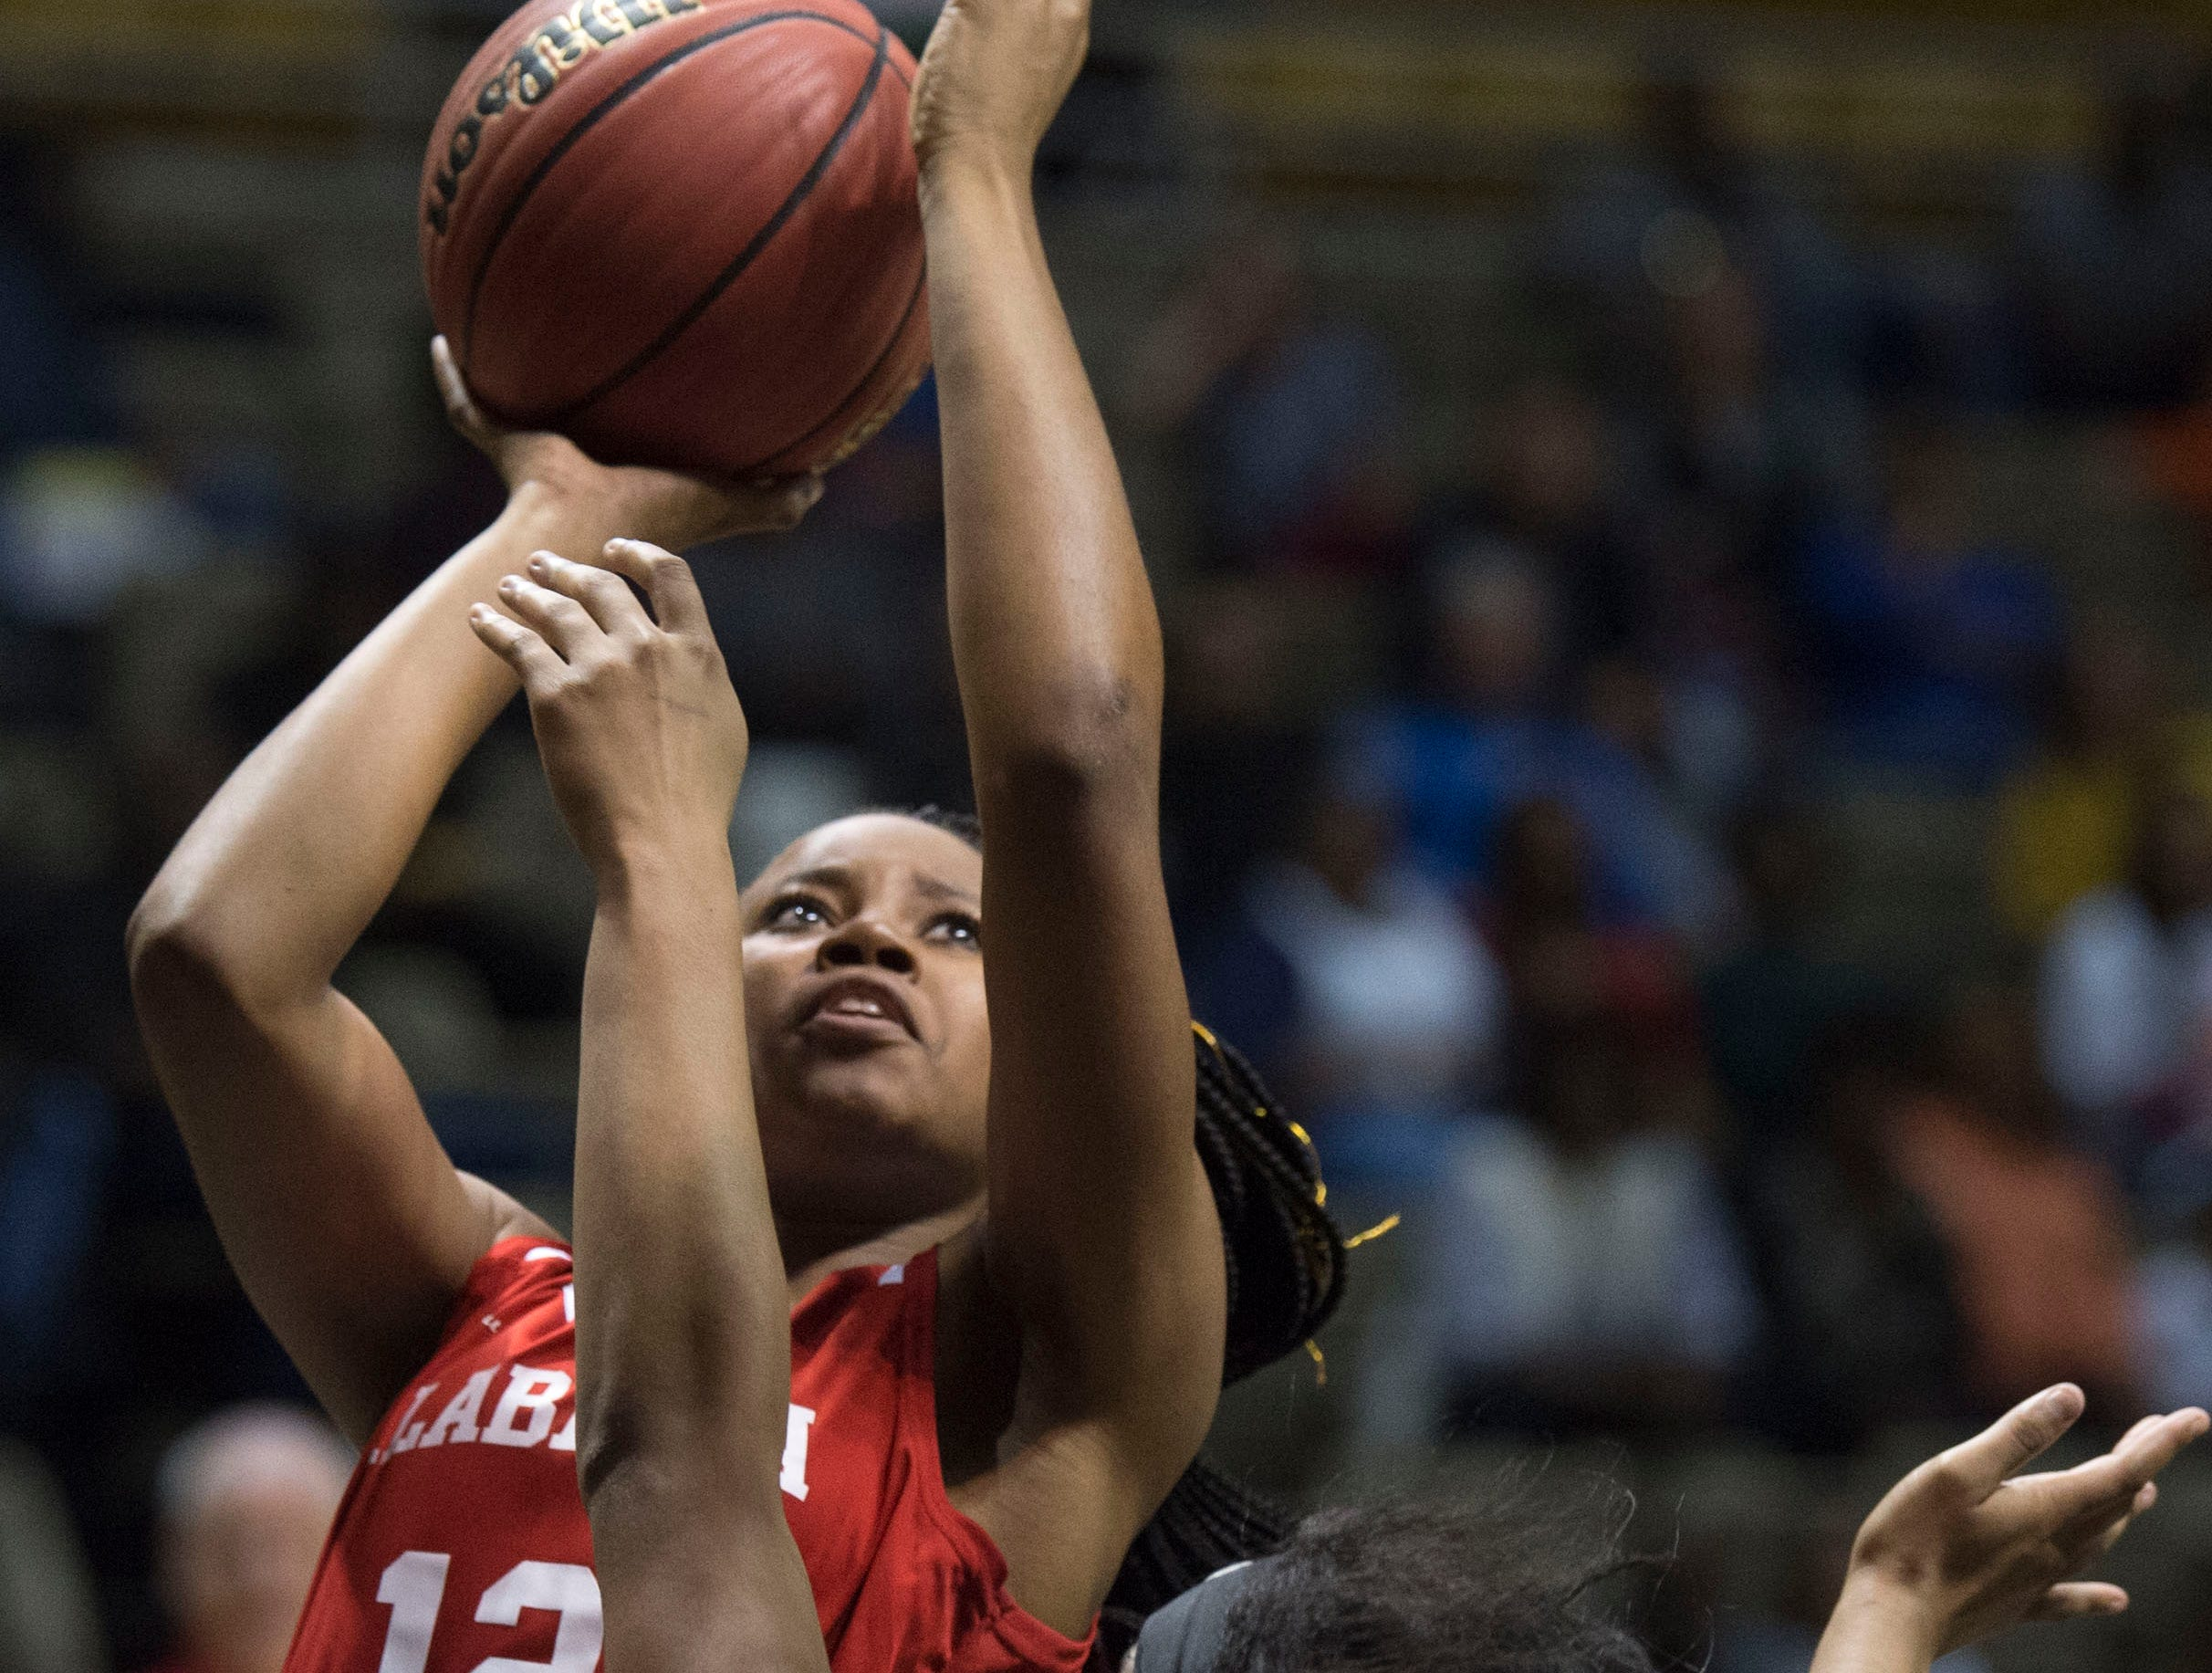 Alabama's Aniyah Smith (12) goes up for a layup during the Alabama-Mississippi All-Star game at the Dunn-Oliver Acadome in Montgomery, Ala., on Friday, March 15, 2019. Alabama All-stars defeated the Mississippi All-stars 101-82.